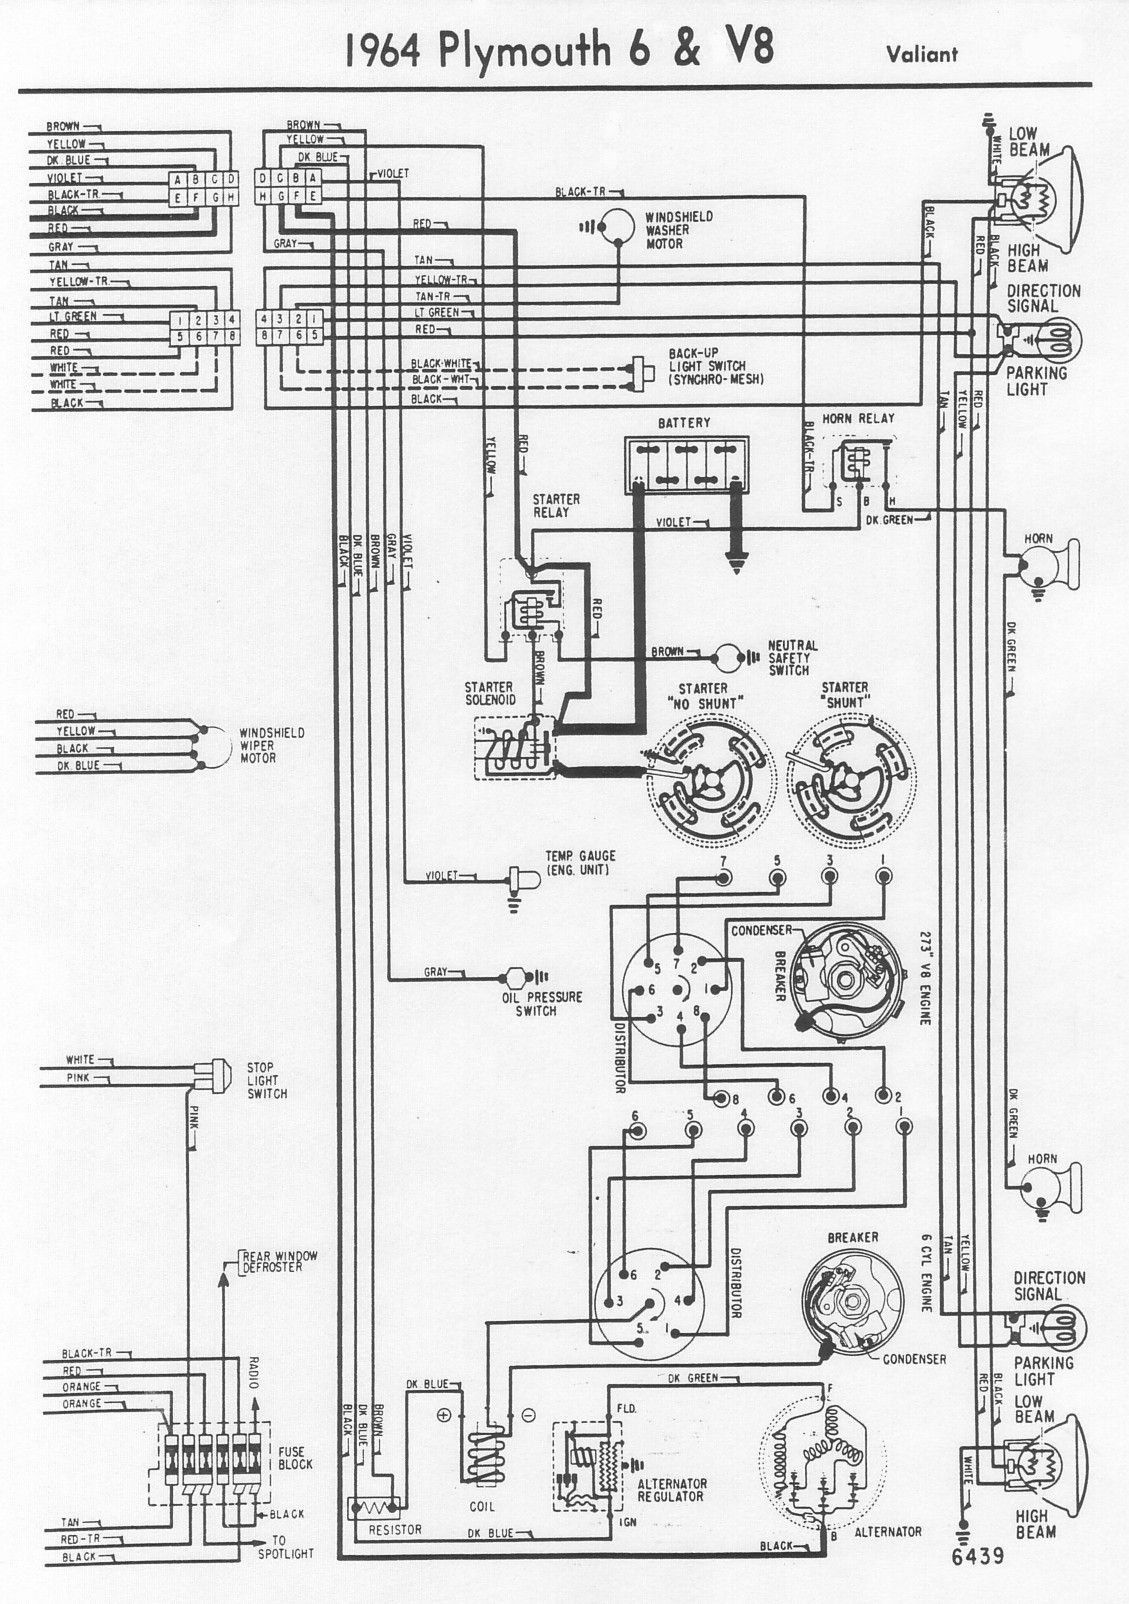 68 Valiant Wiring Diagram Data Wiring Schema 1972 Dodge Dart Wiring Diagram  1972 Plymouth Barracuda Wiring Diagram